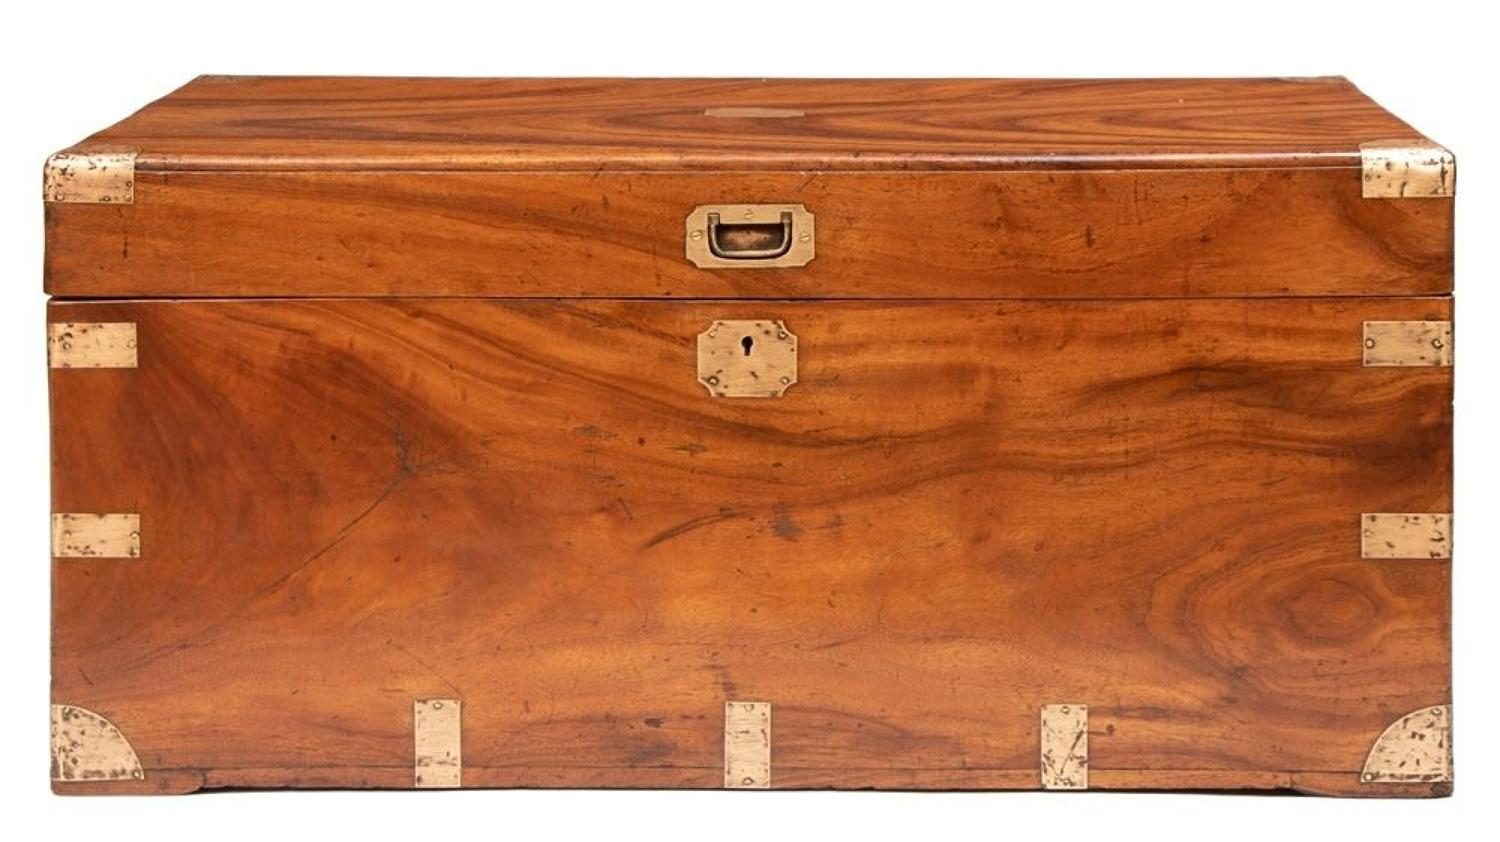 Superb Camphor Wood Military Trunk c.1850